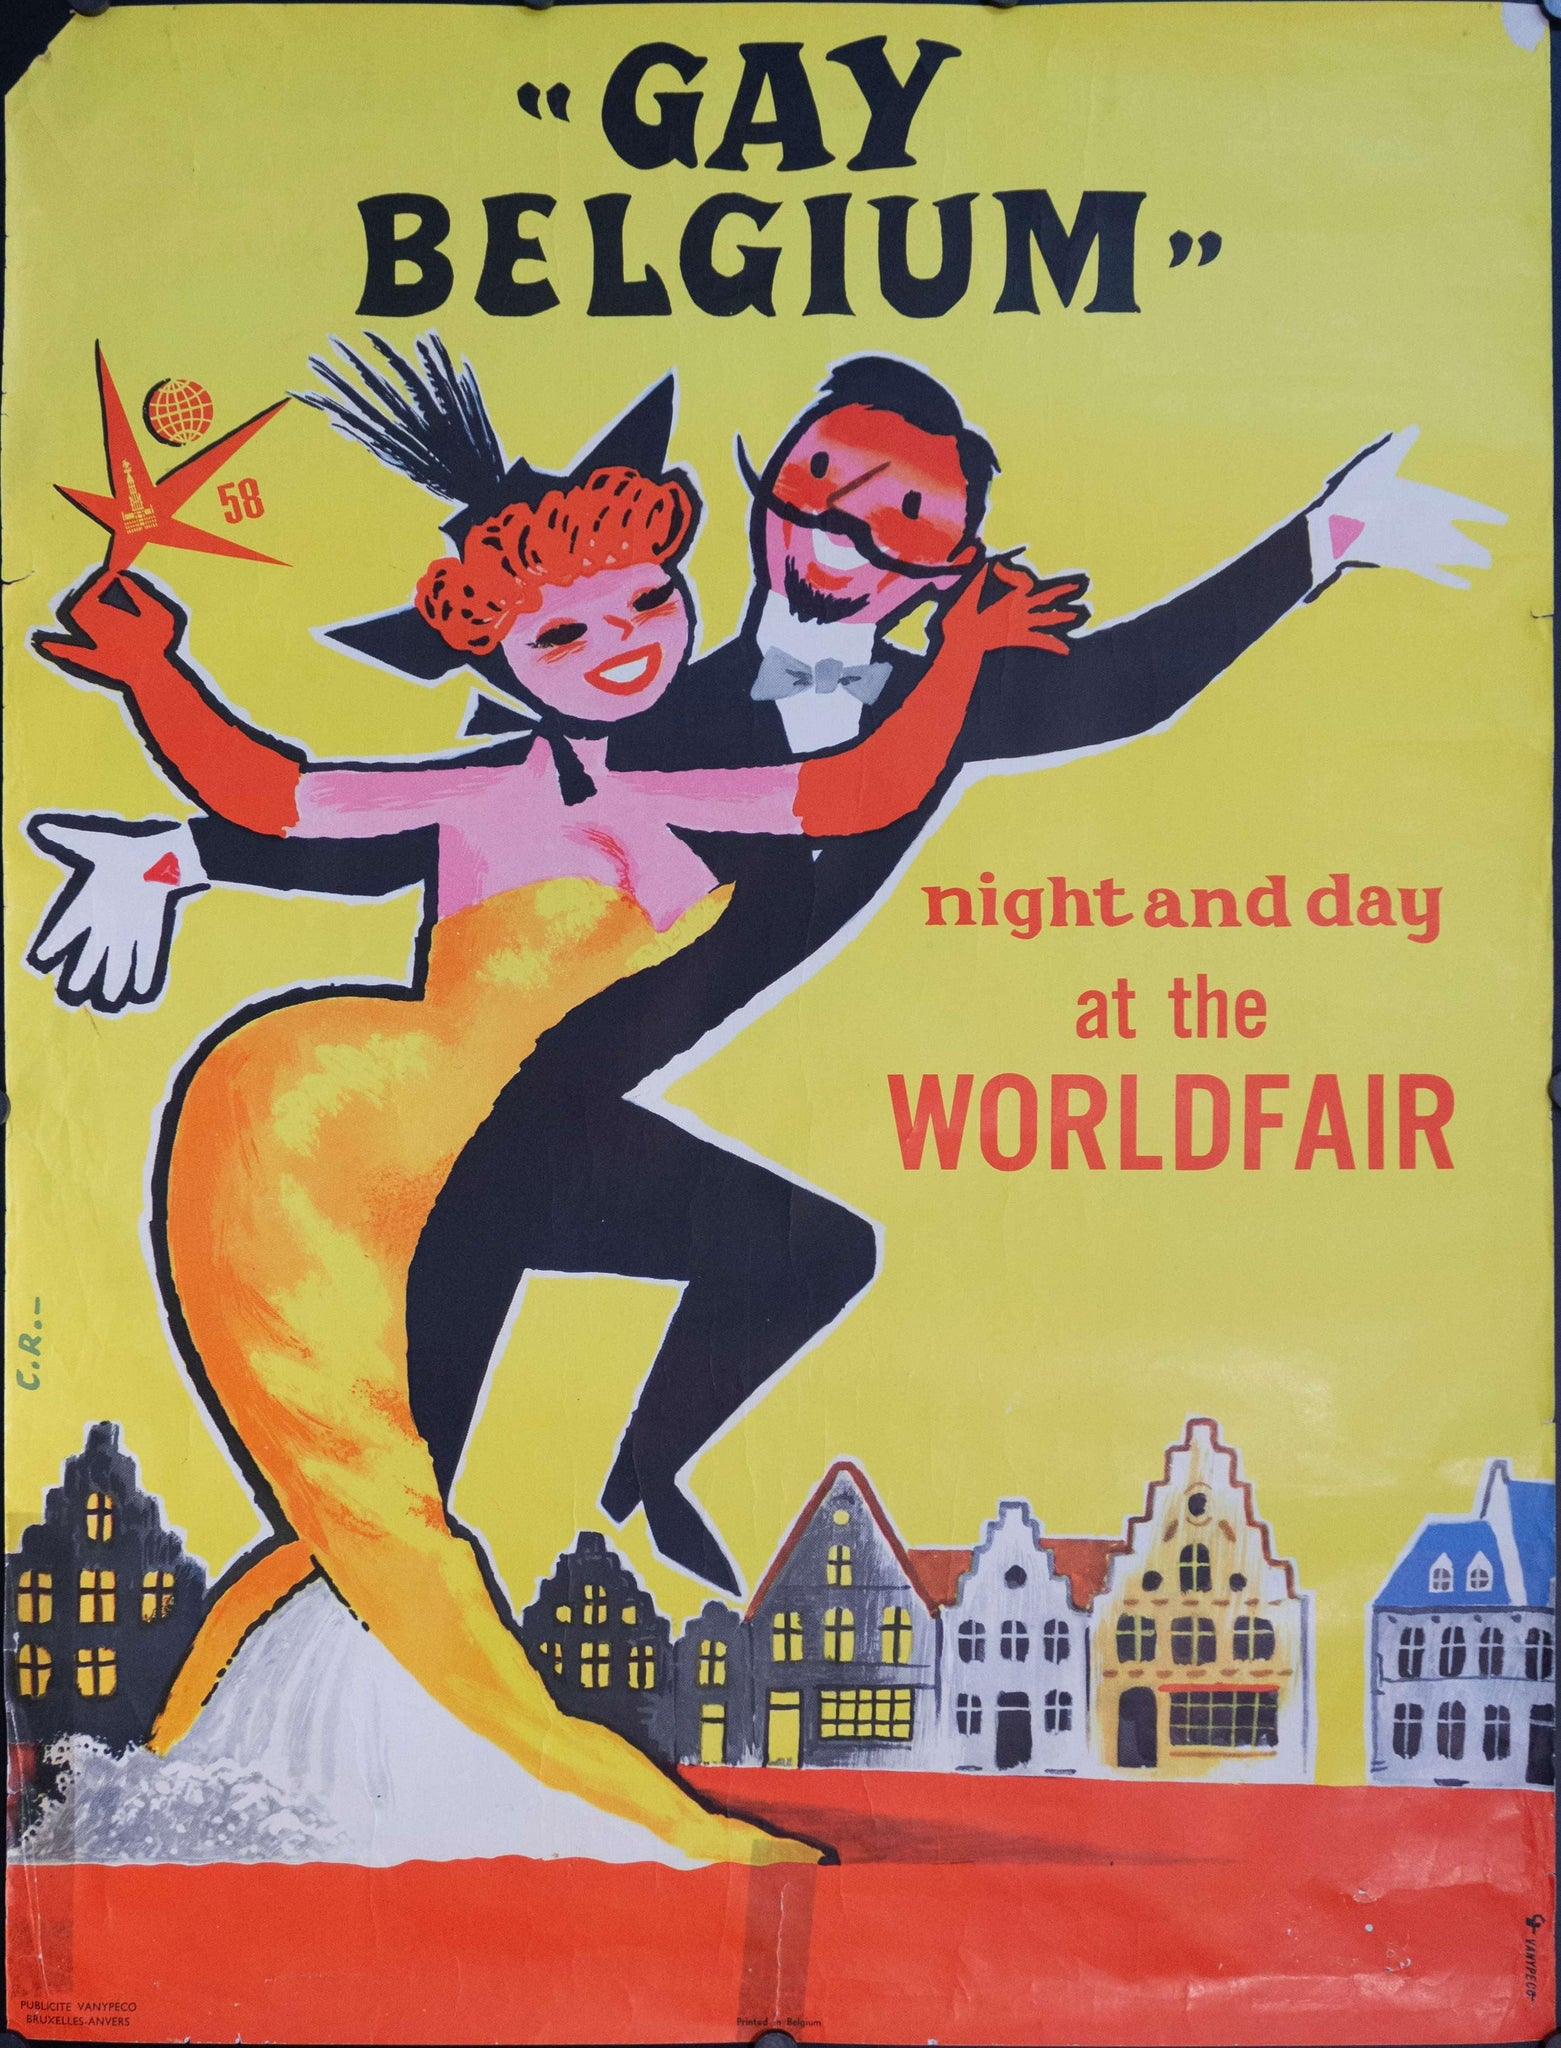 1958 Gay Belgium World Fair